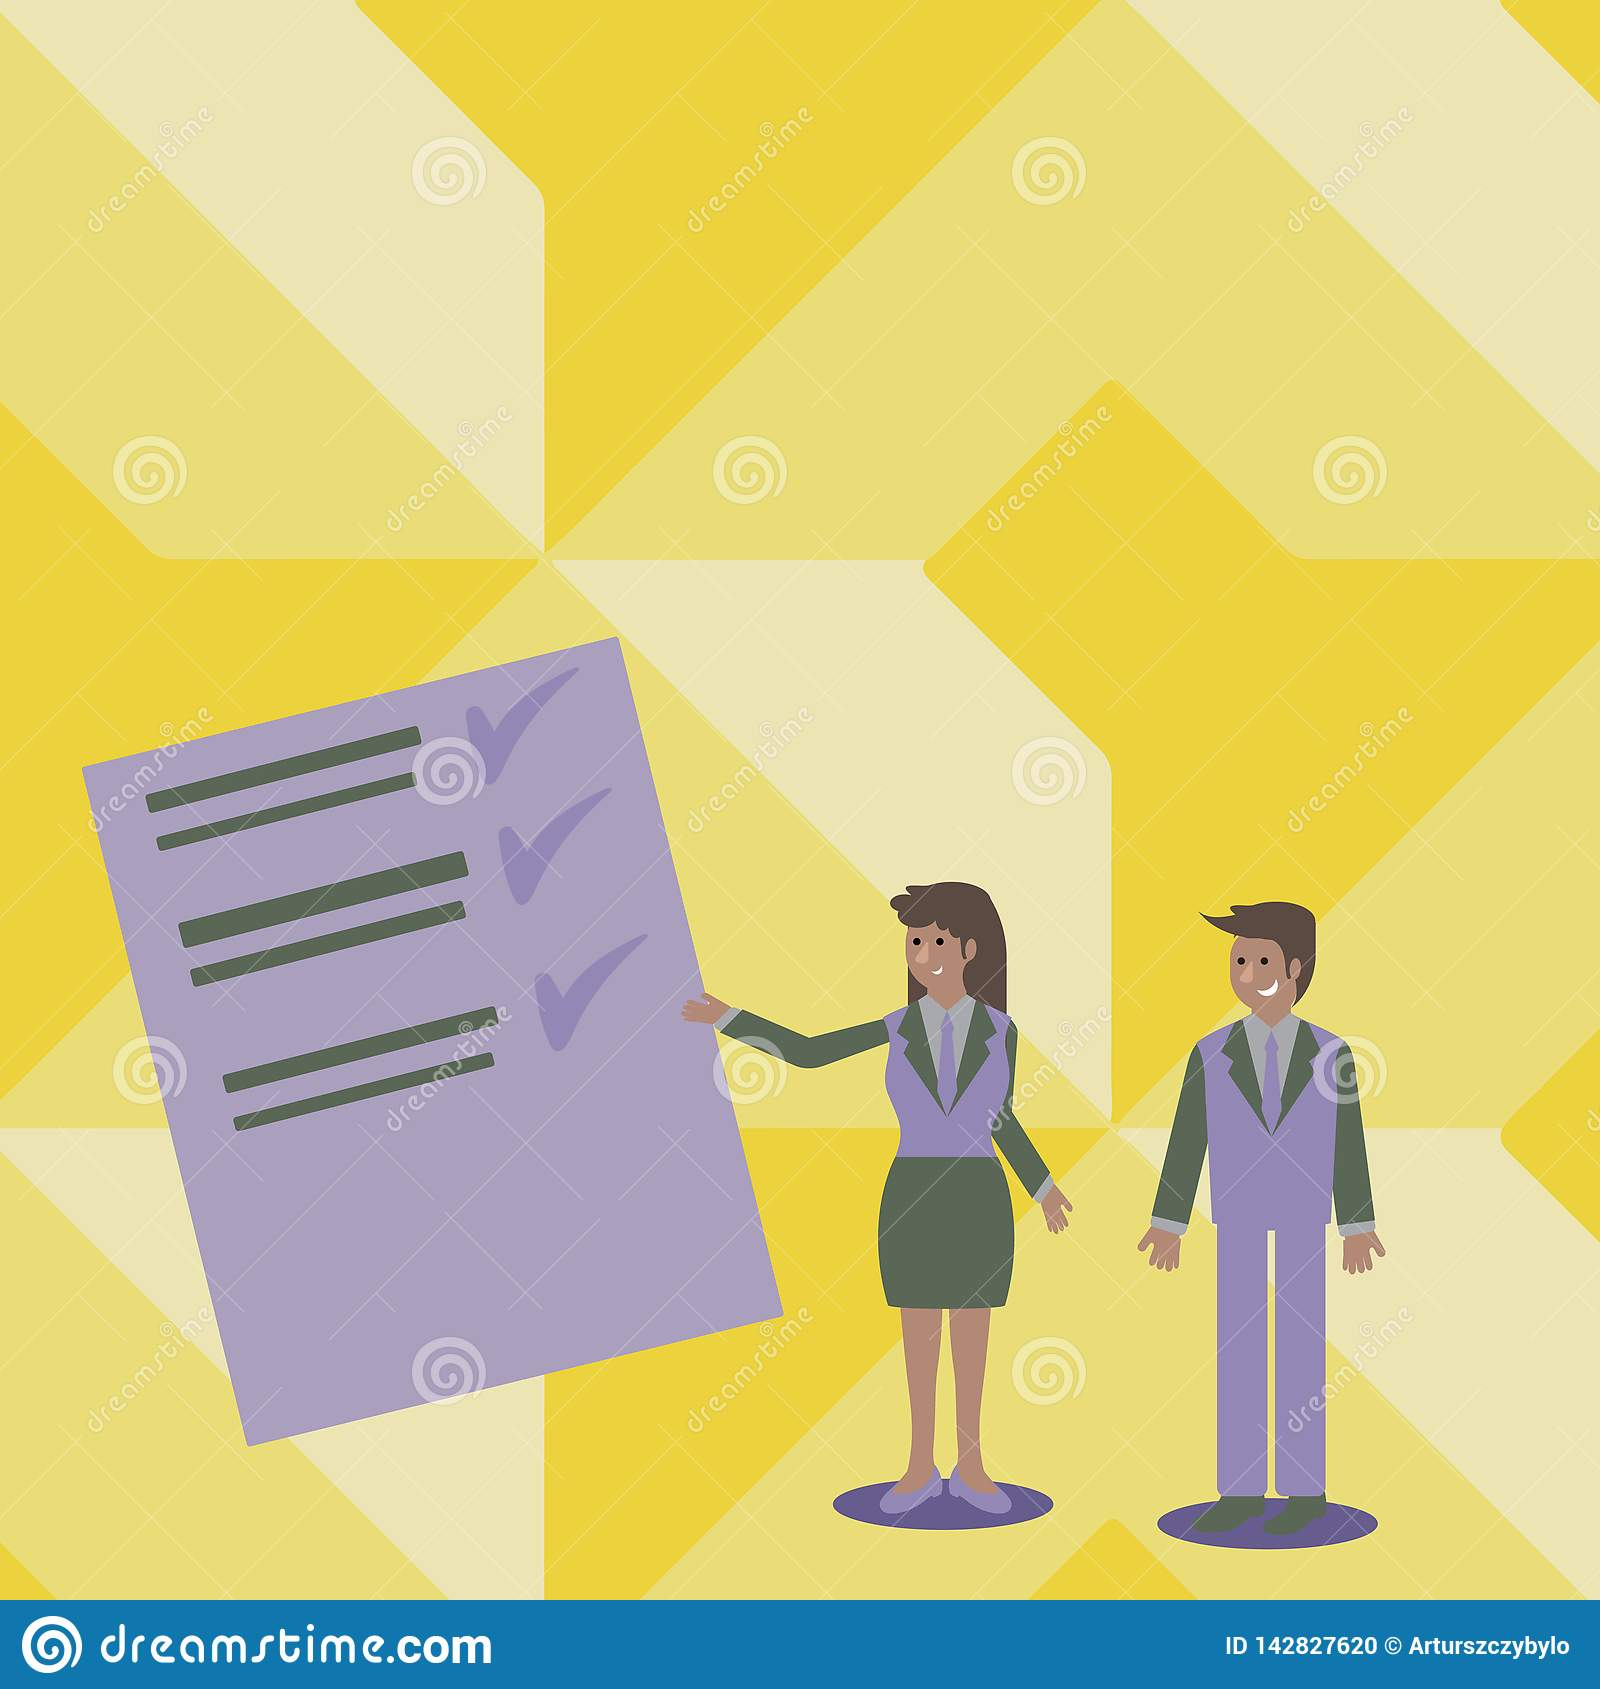 Confident Man and Woman in Business Suit Standing, Gesturing and Presenting Data Report on Color Board. Creative